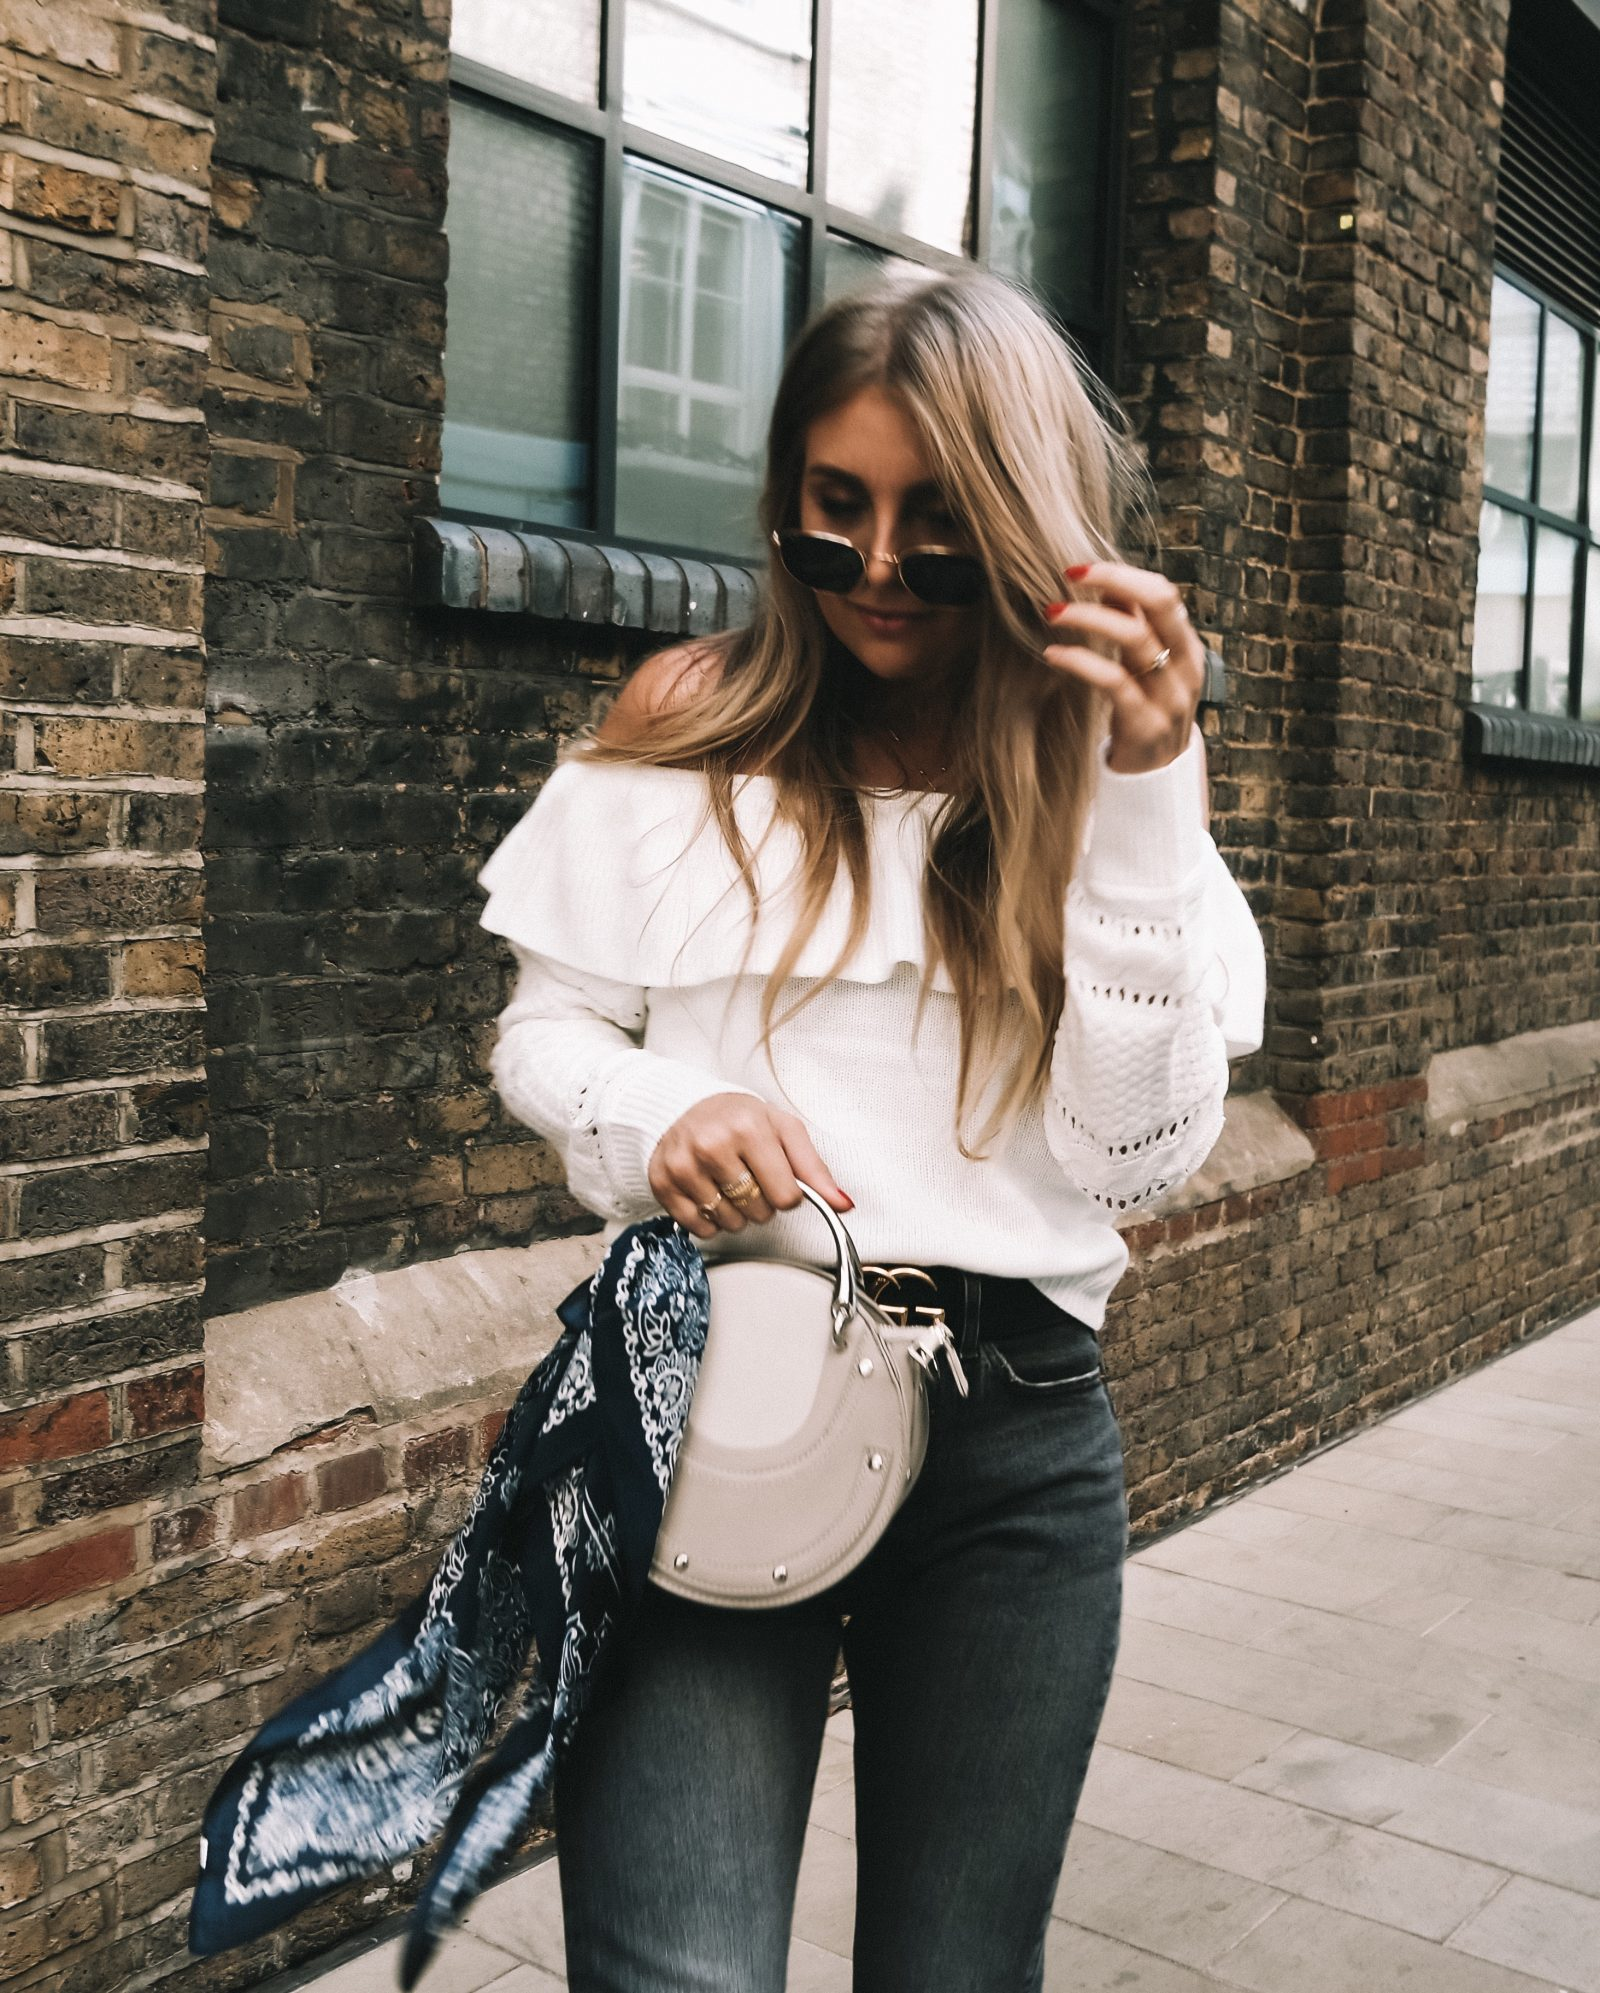 Moving To London - Lulus Outfit - Autumn Outfit Ideas - Sinead Crowe